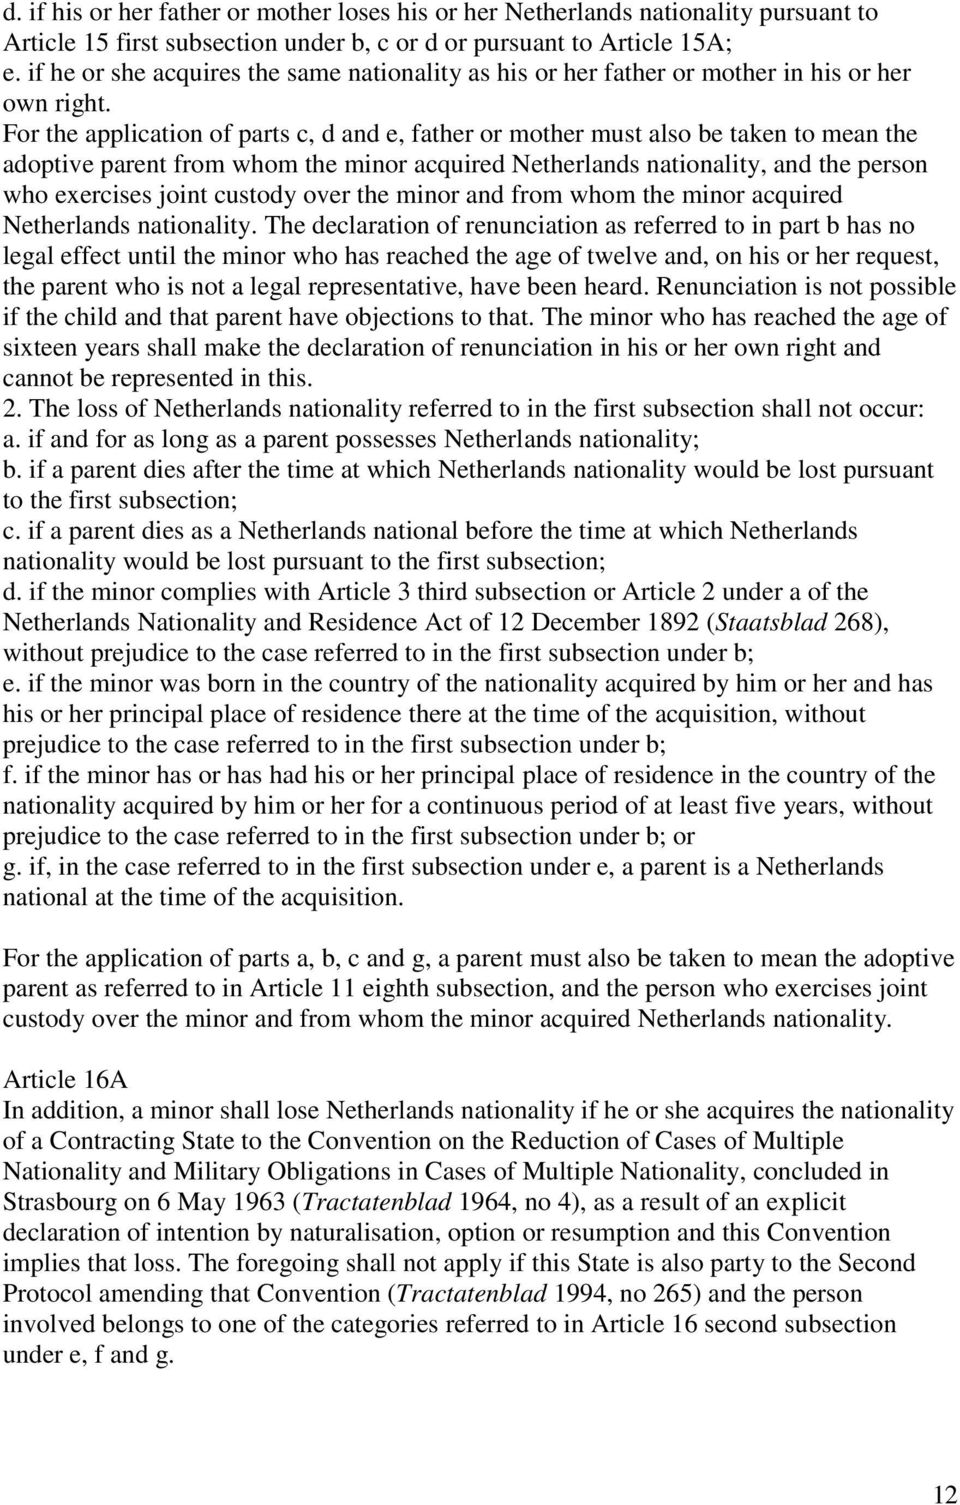 For the application of parts c, d and e, father or mother must also be taken to mean the adoptive parent from whom the minor acquired Netherlands nationality, and the person who exercises joint